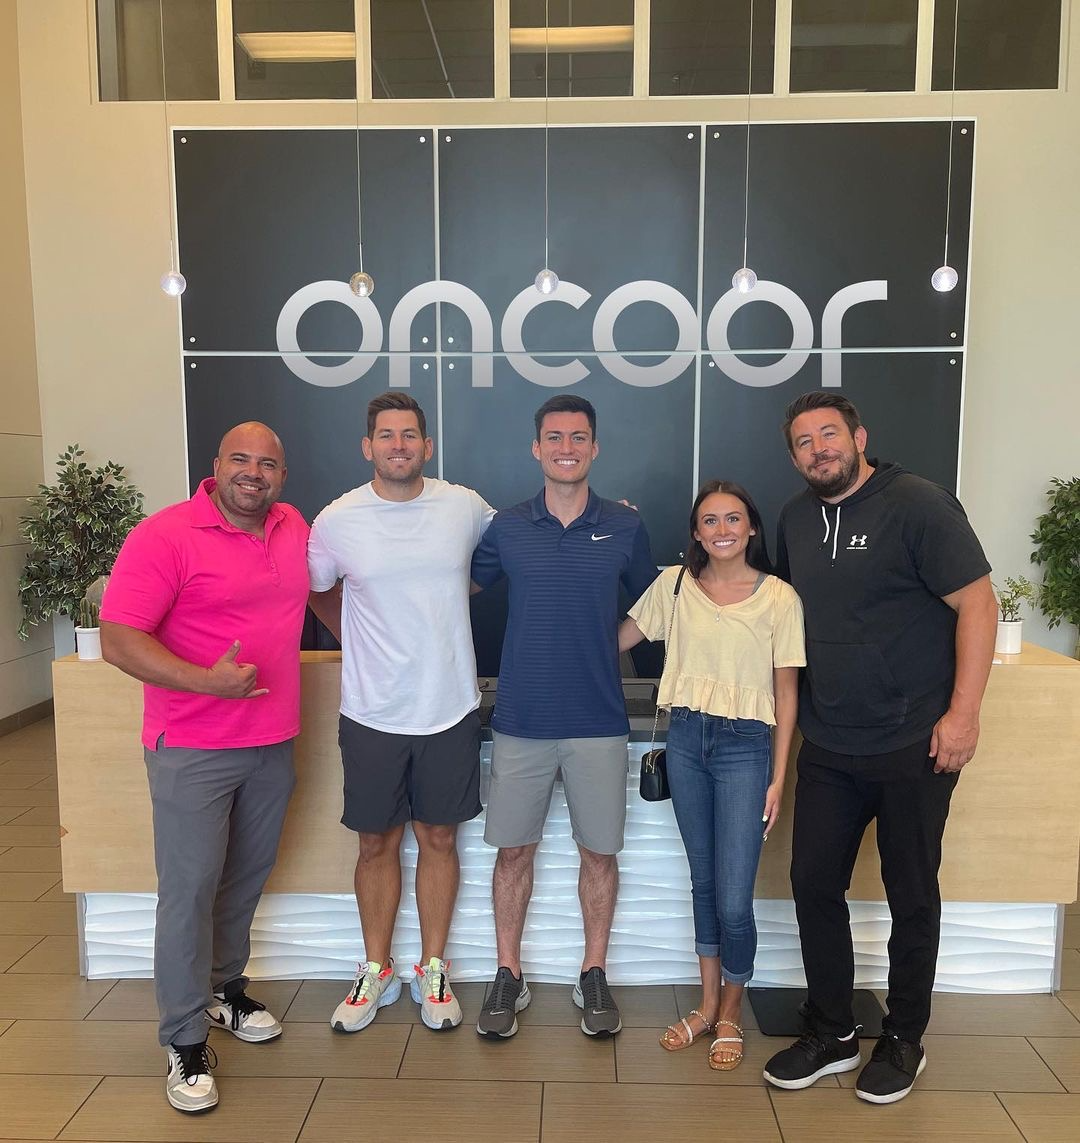 l to r: Mercury Group president Kevin Trost, Oncoor founder Brian Fagan, Alex Barcello, Zoe Simpson and Jesse Christiansen.